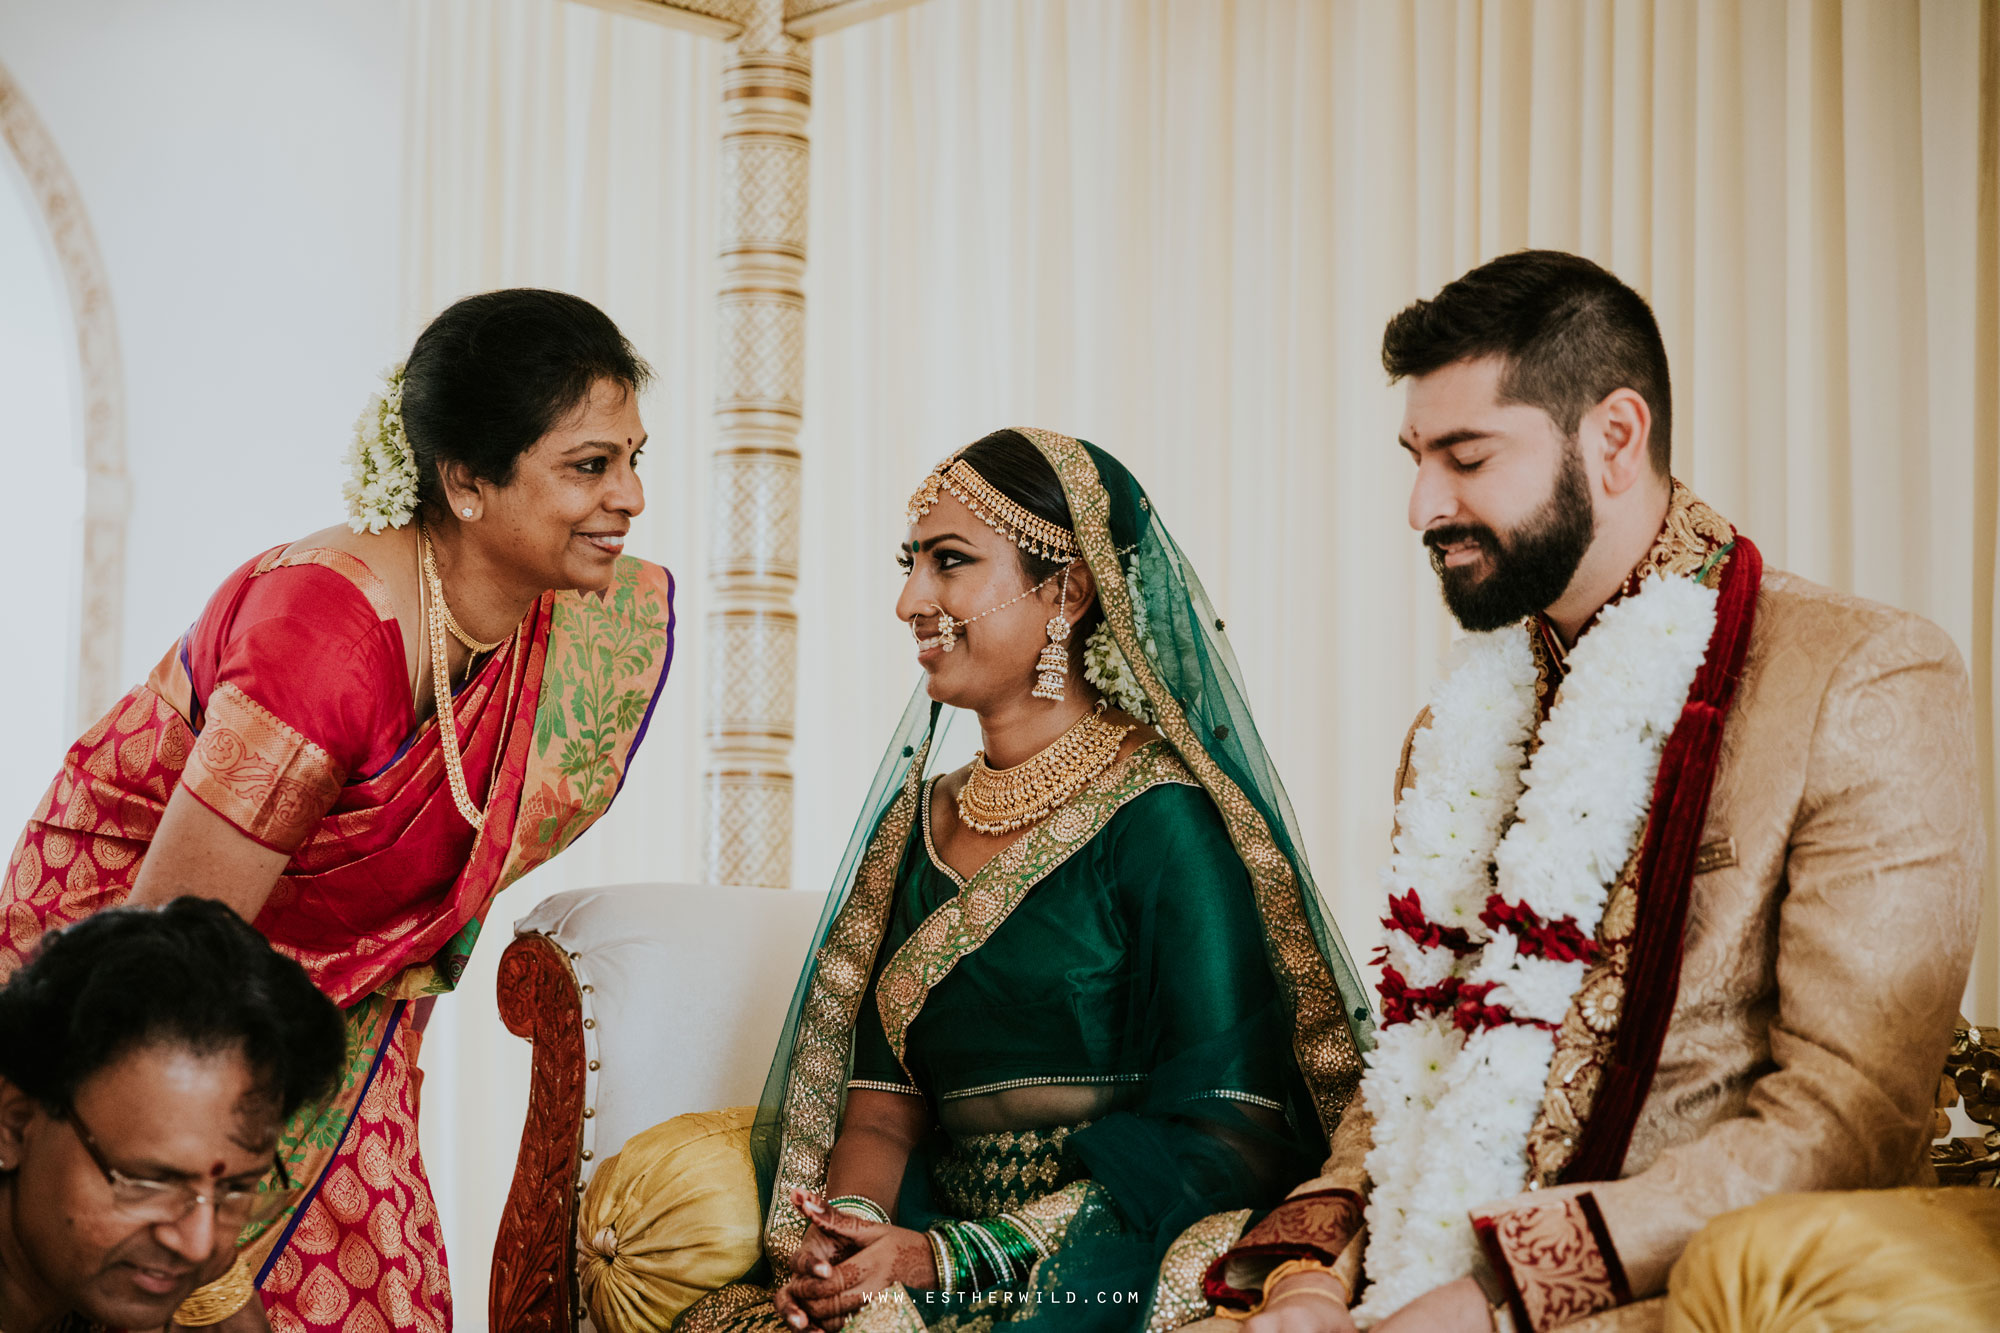 Northbrook_Park_Farnham_Surrey_London_Wedding_Hindu_Fusion_Esther_Wild_Photographer_IMG_3847.jpg